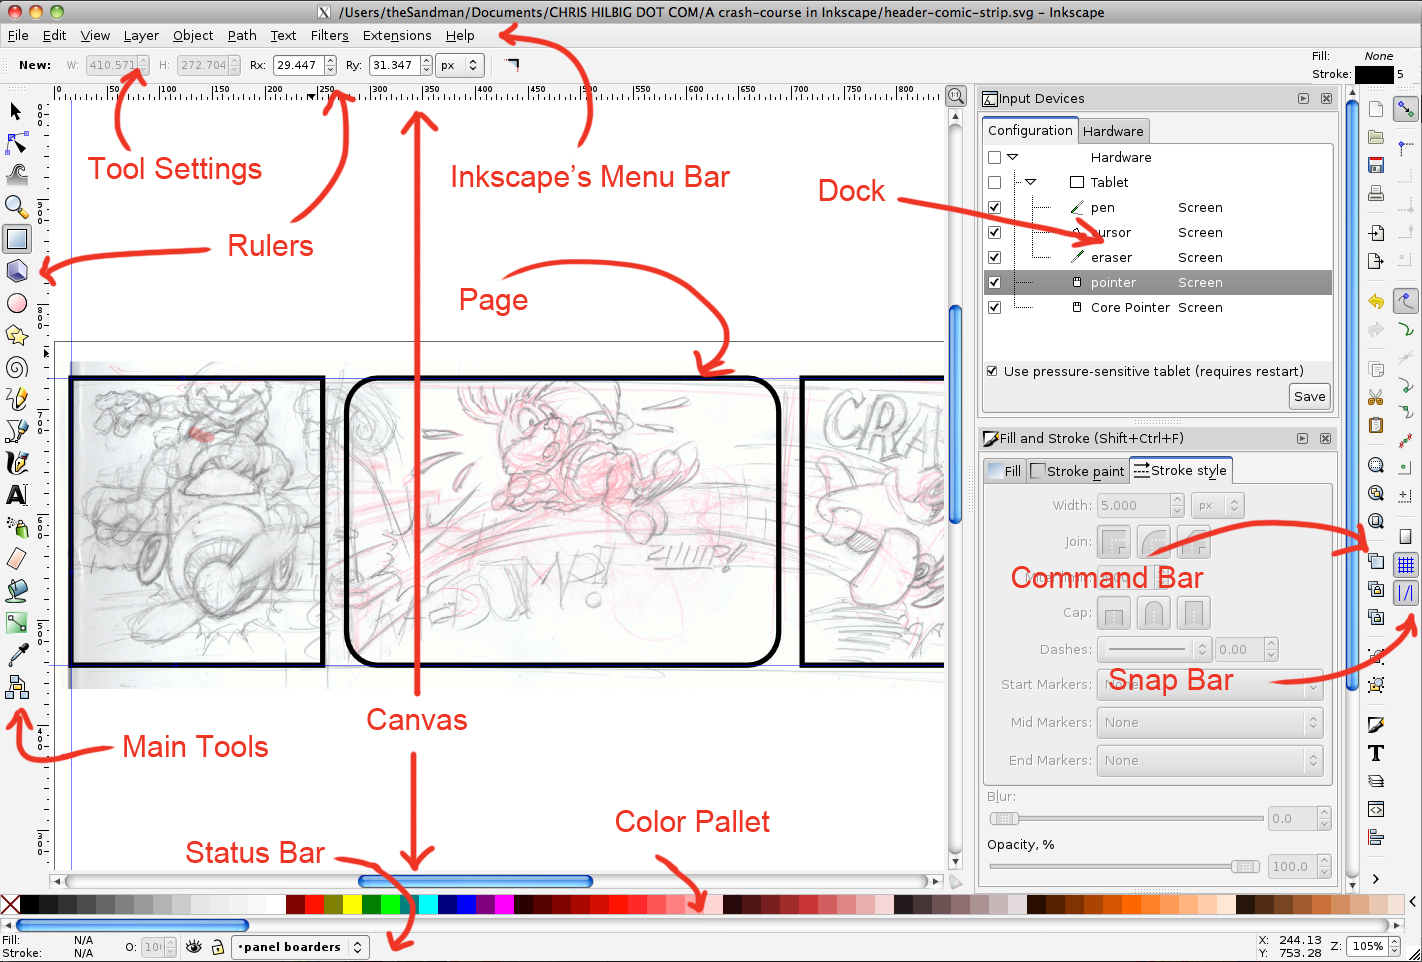 A crash course in inkscape chris hilbig beta edition inkscapes interface overview ccuart Choice Image